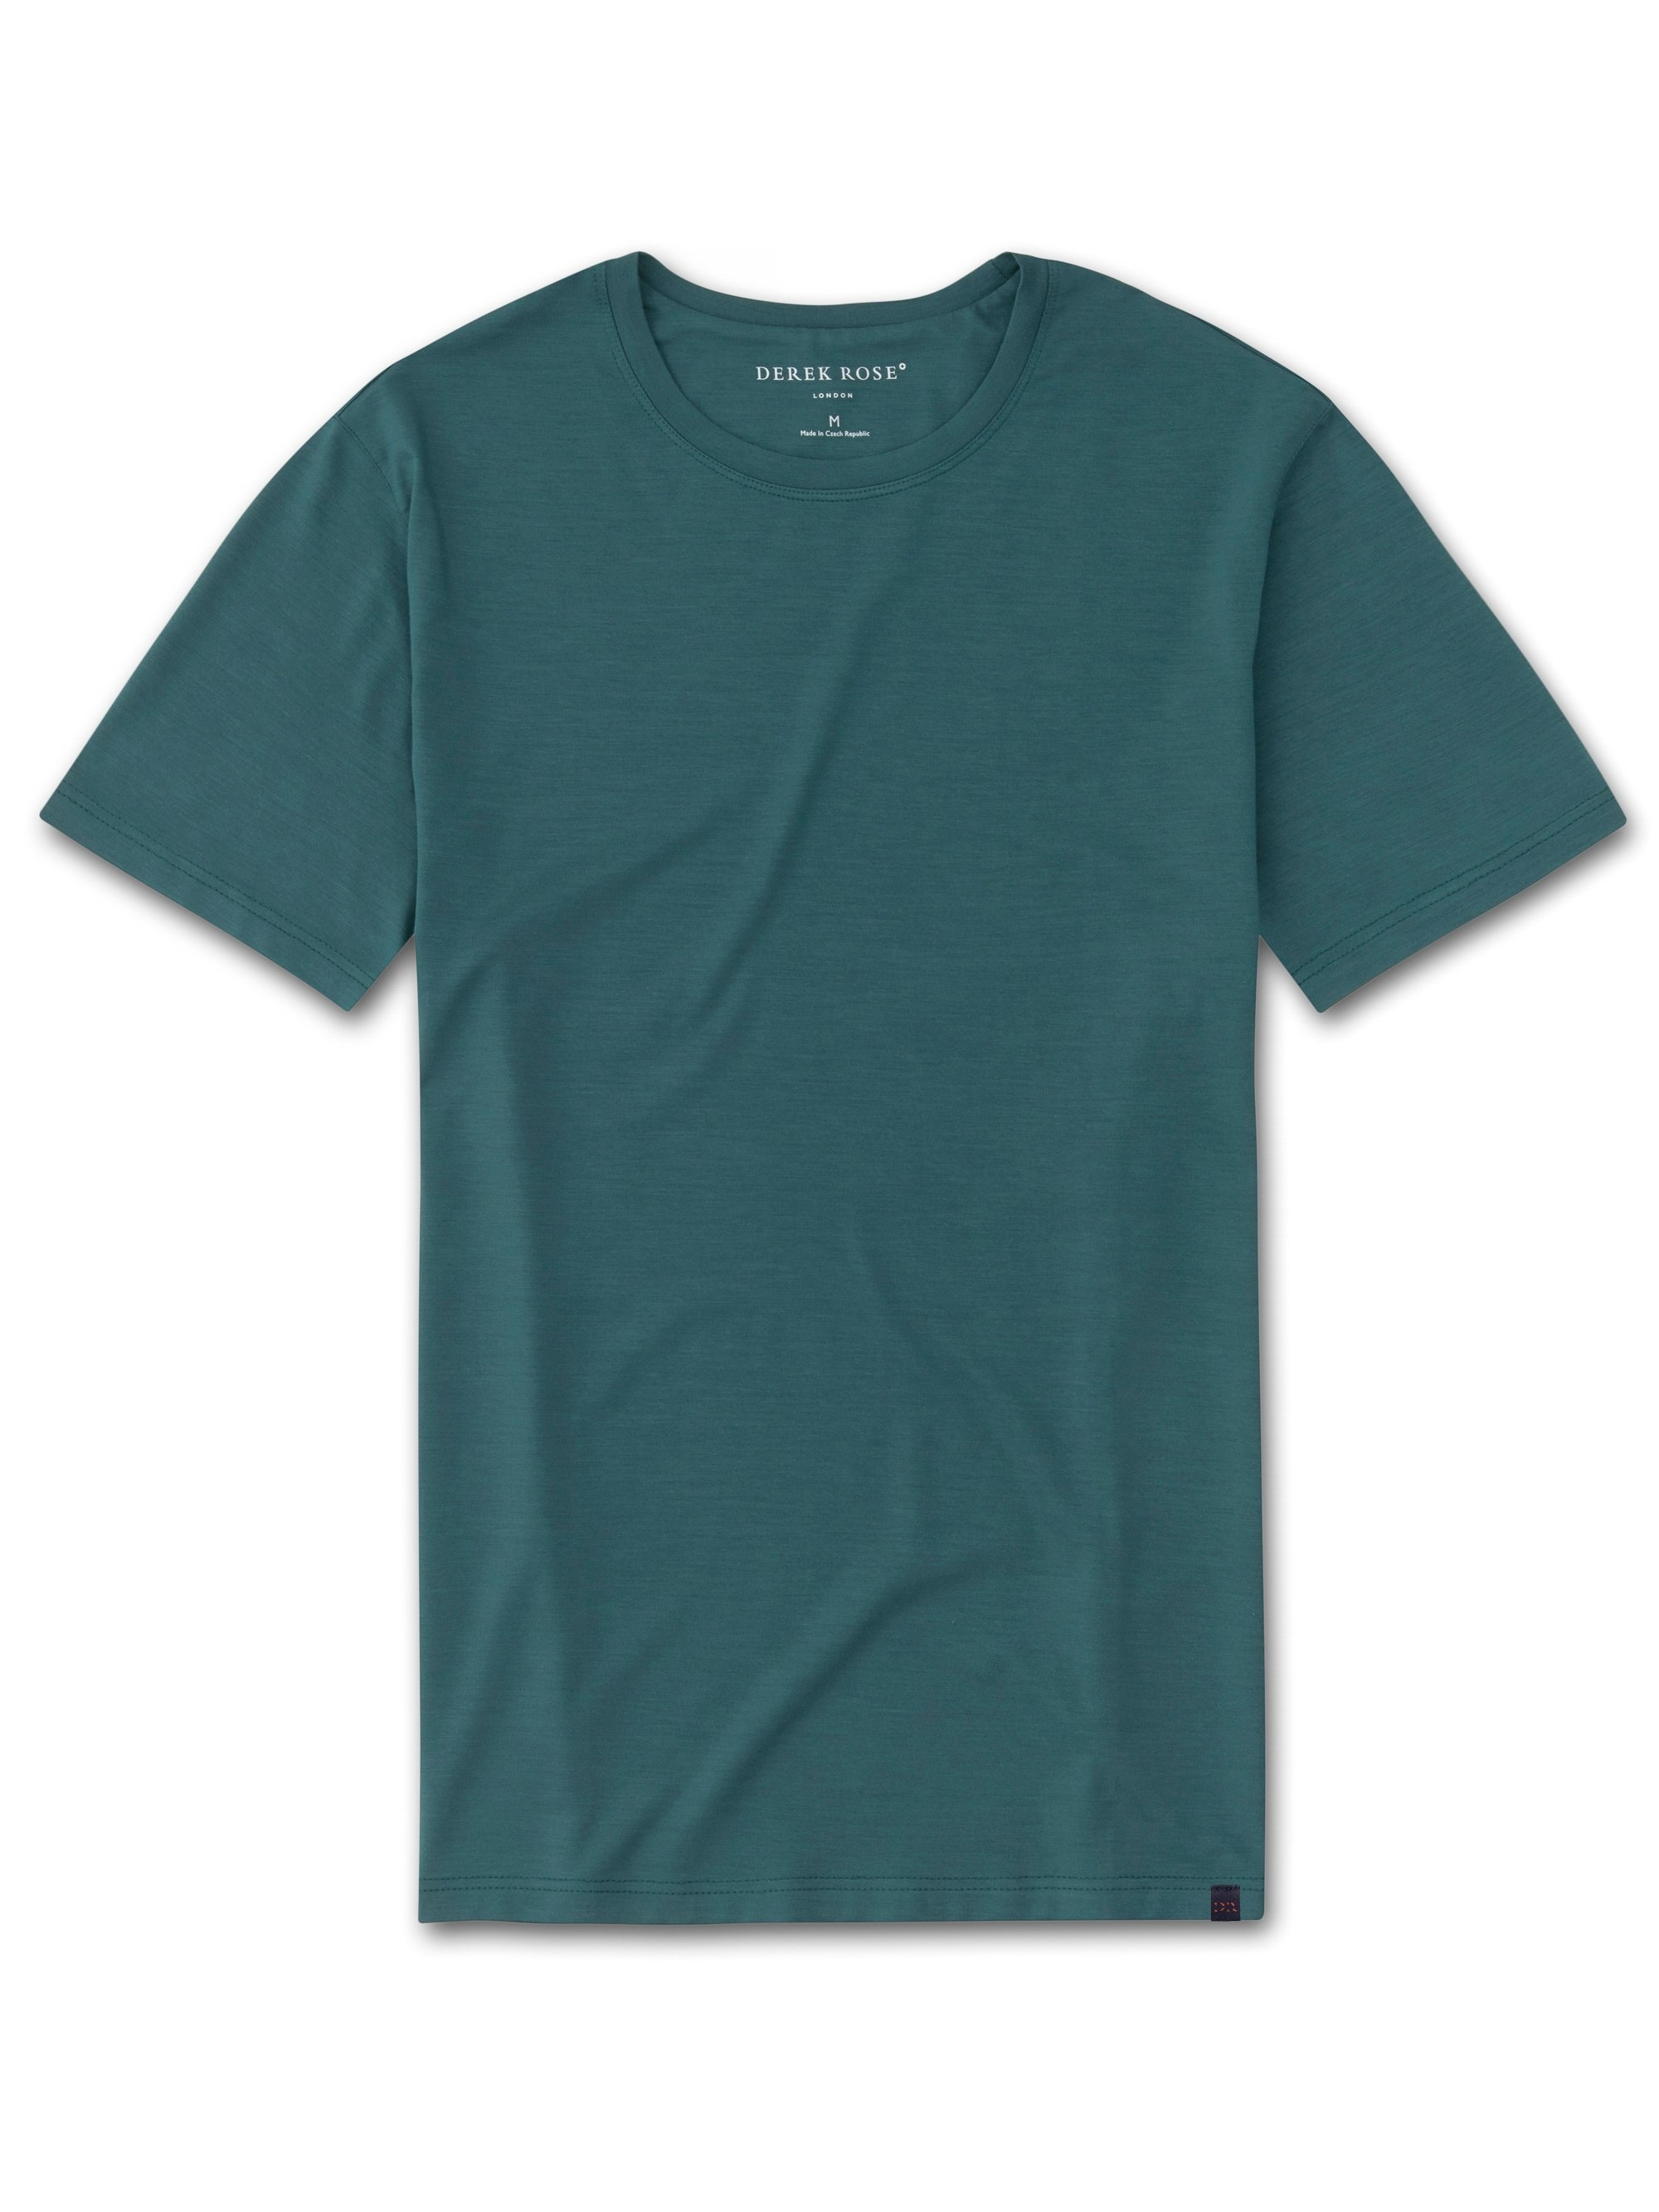 Men's Short Sleeve T-Shirt Basel 8 Micro Modal Stretch Green